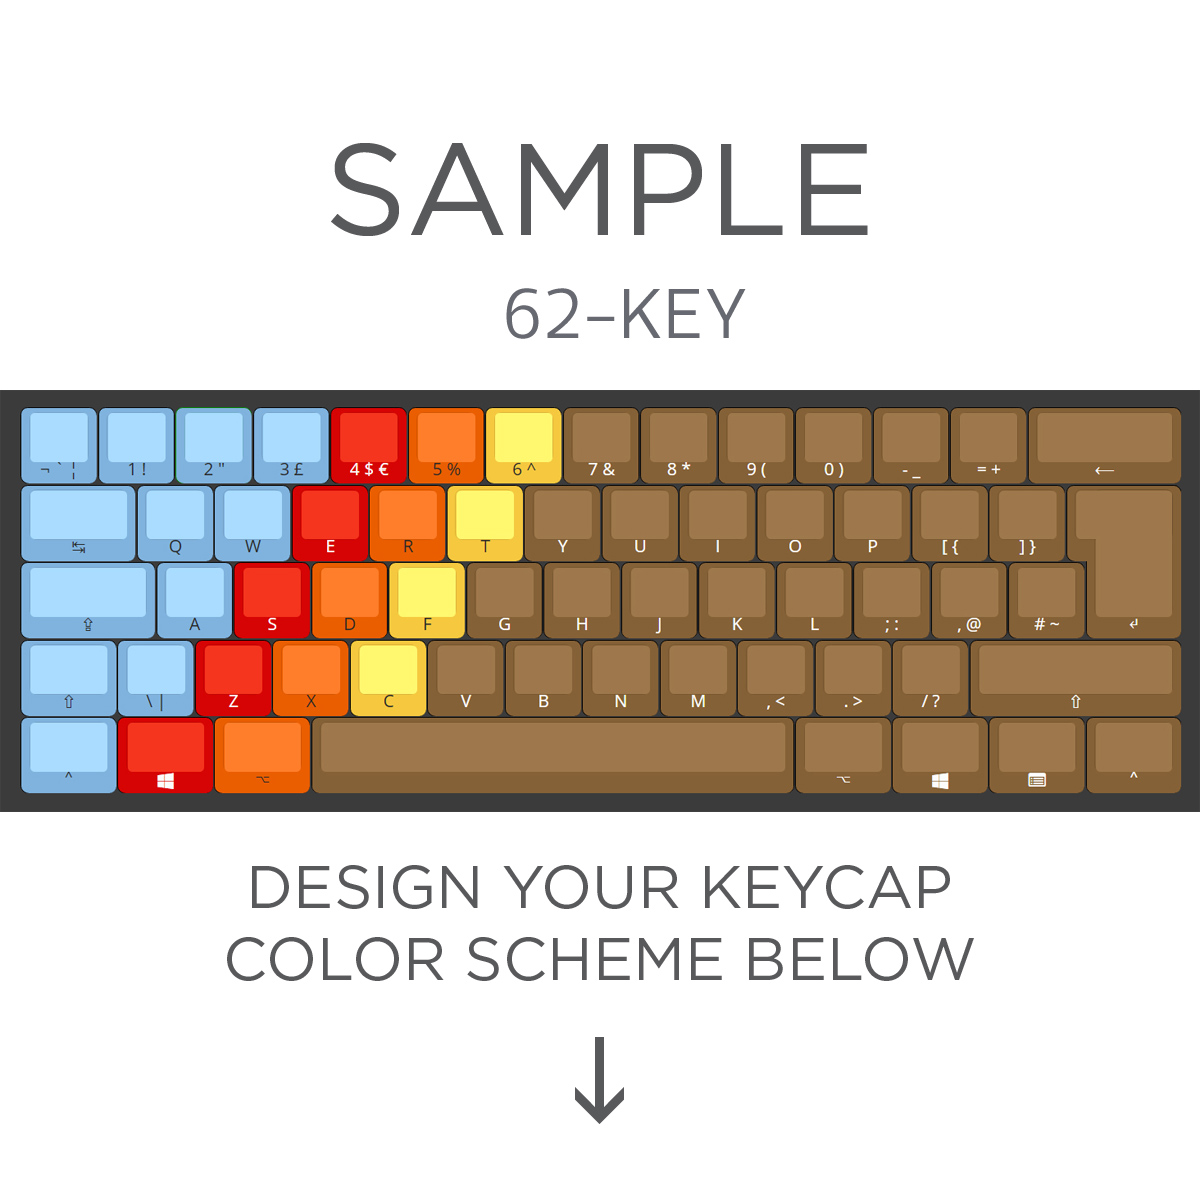 Max keyboard iso layout custom color cherry mx keycap set front max keyboard iso 62 key layout custom color cherry mx full replacement keycap set nvjuhfo Image collections